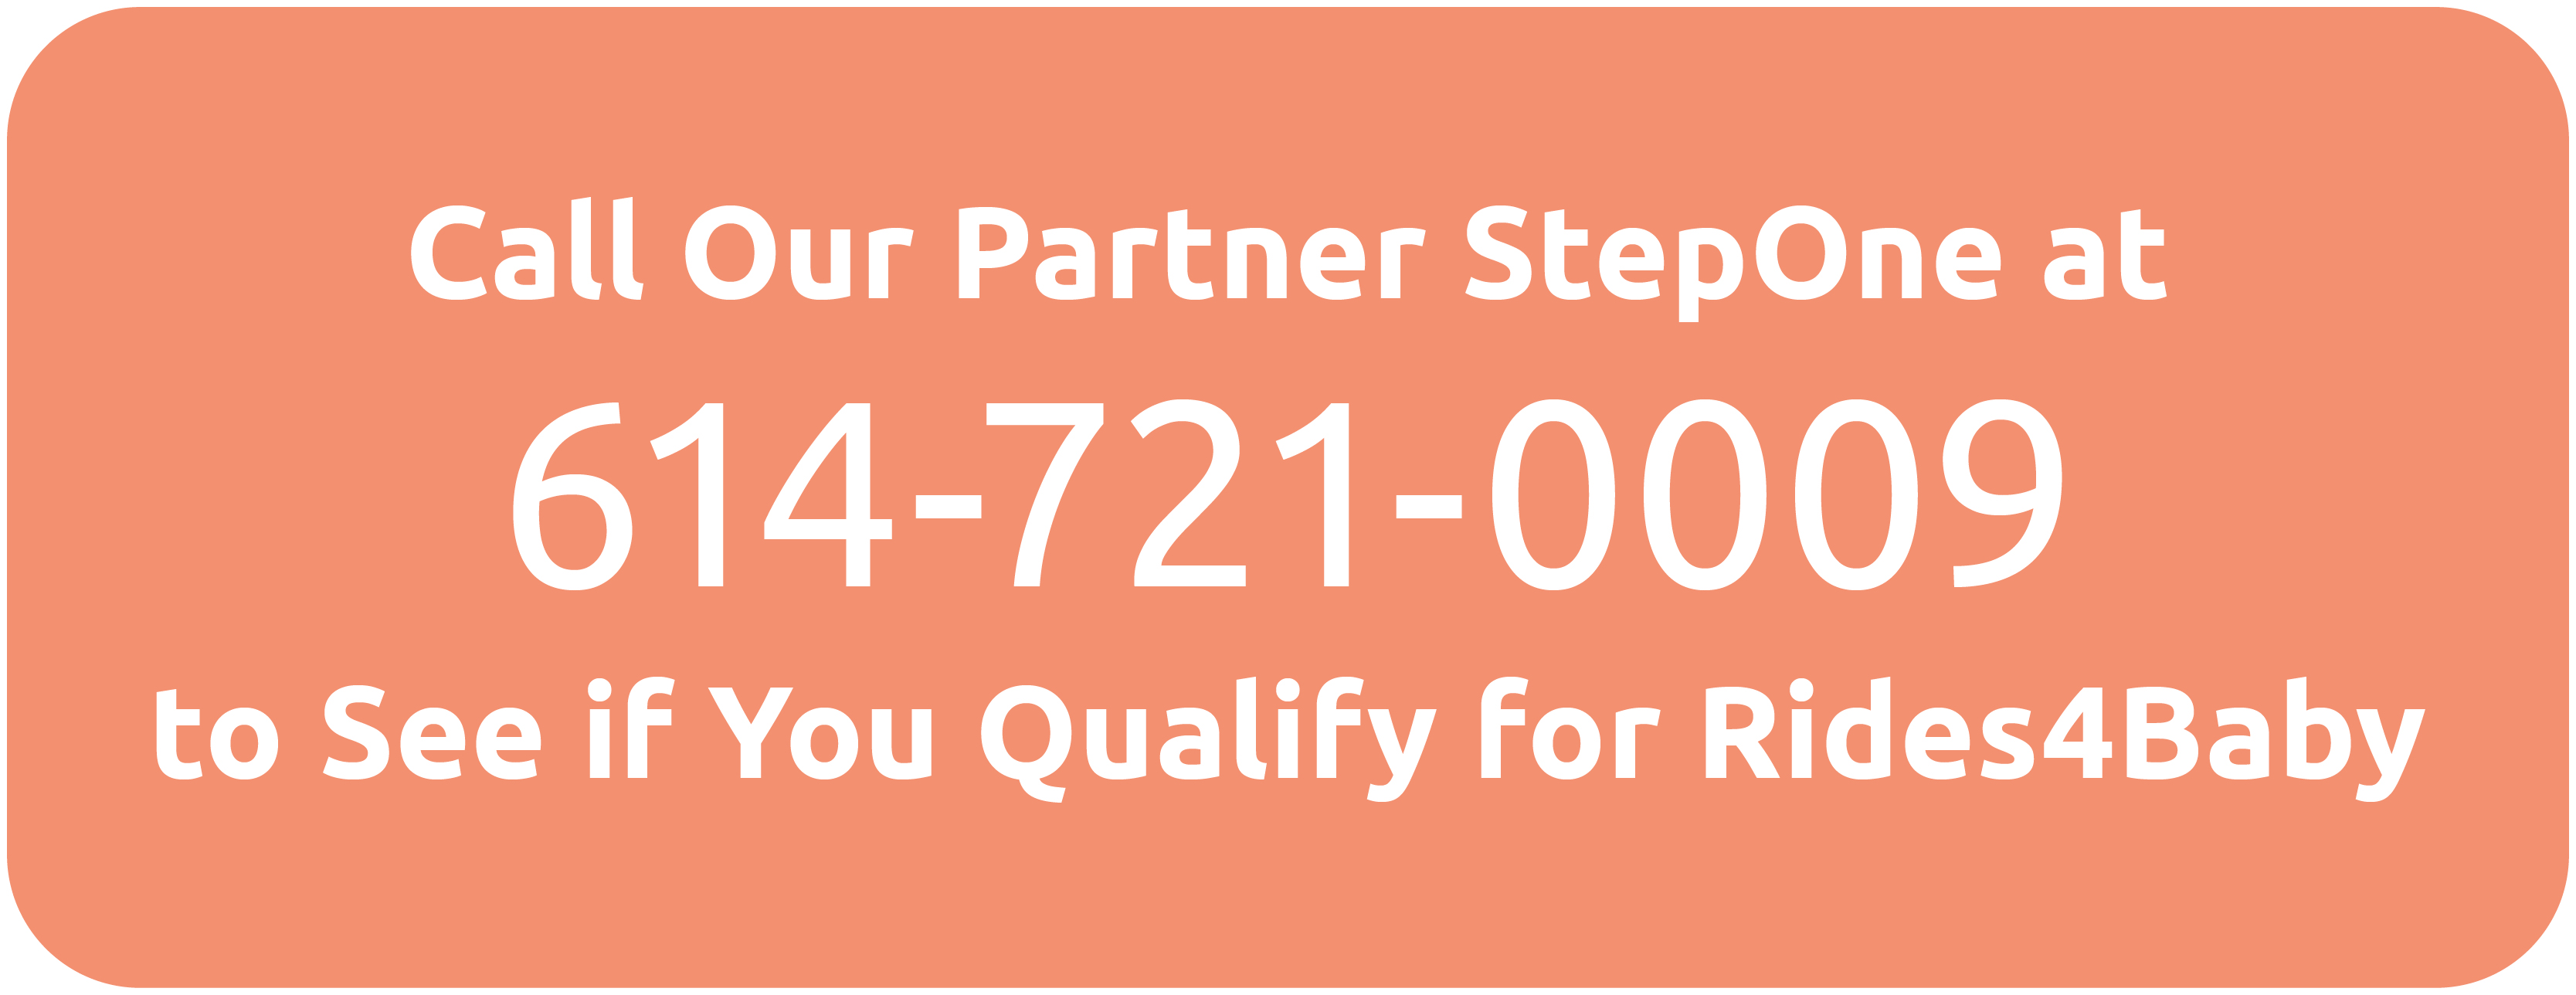 Call StepOne to see if you qualify